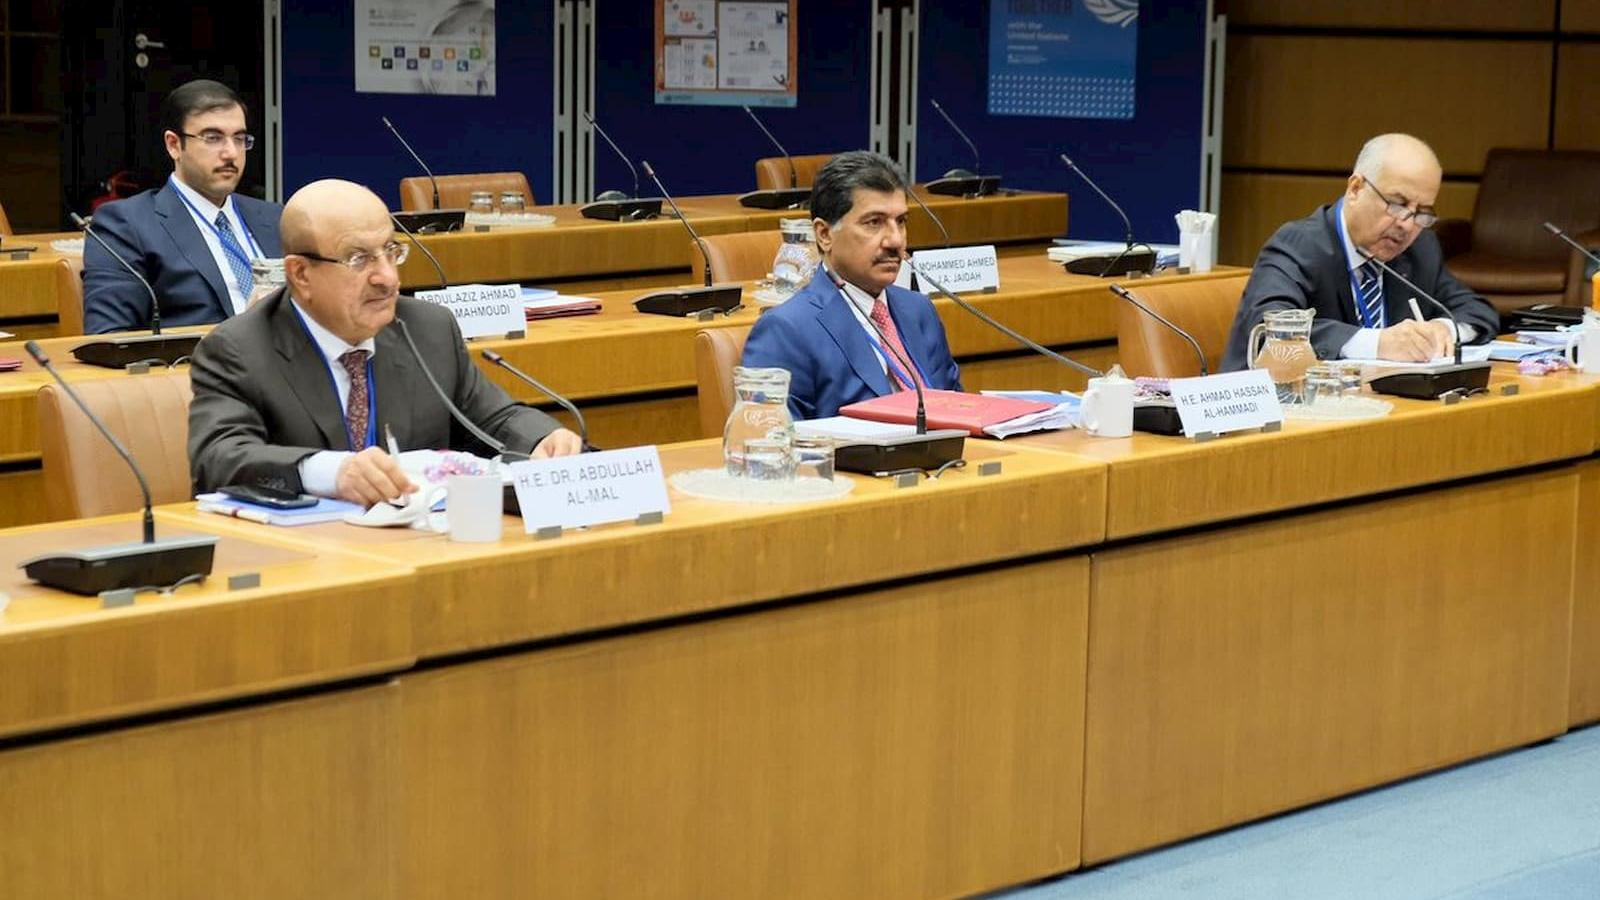 UN lauds Qatar's role in implementing 2030 sustainable development plan